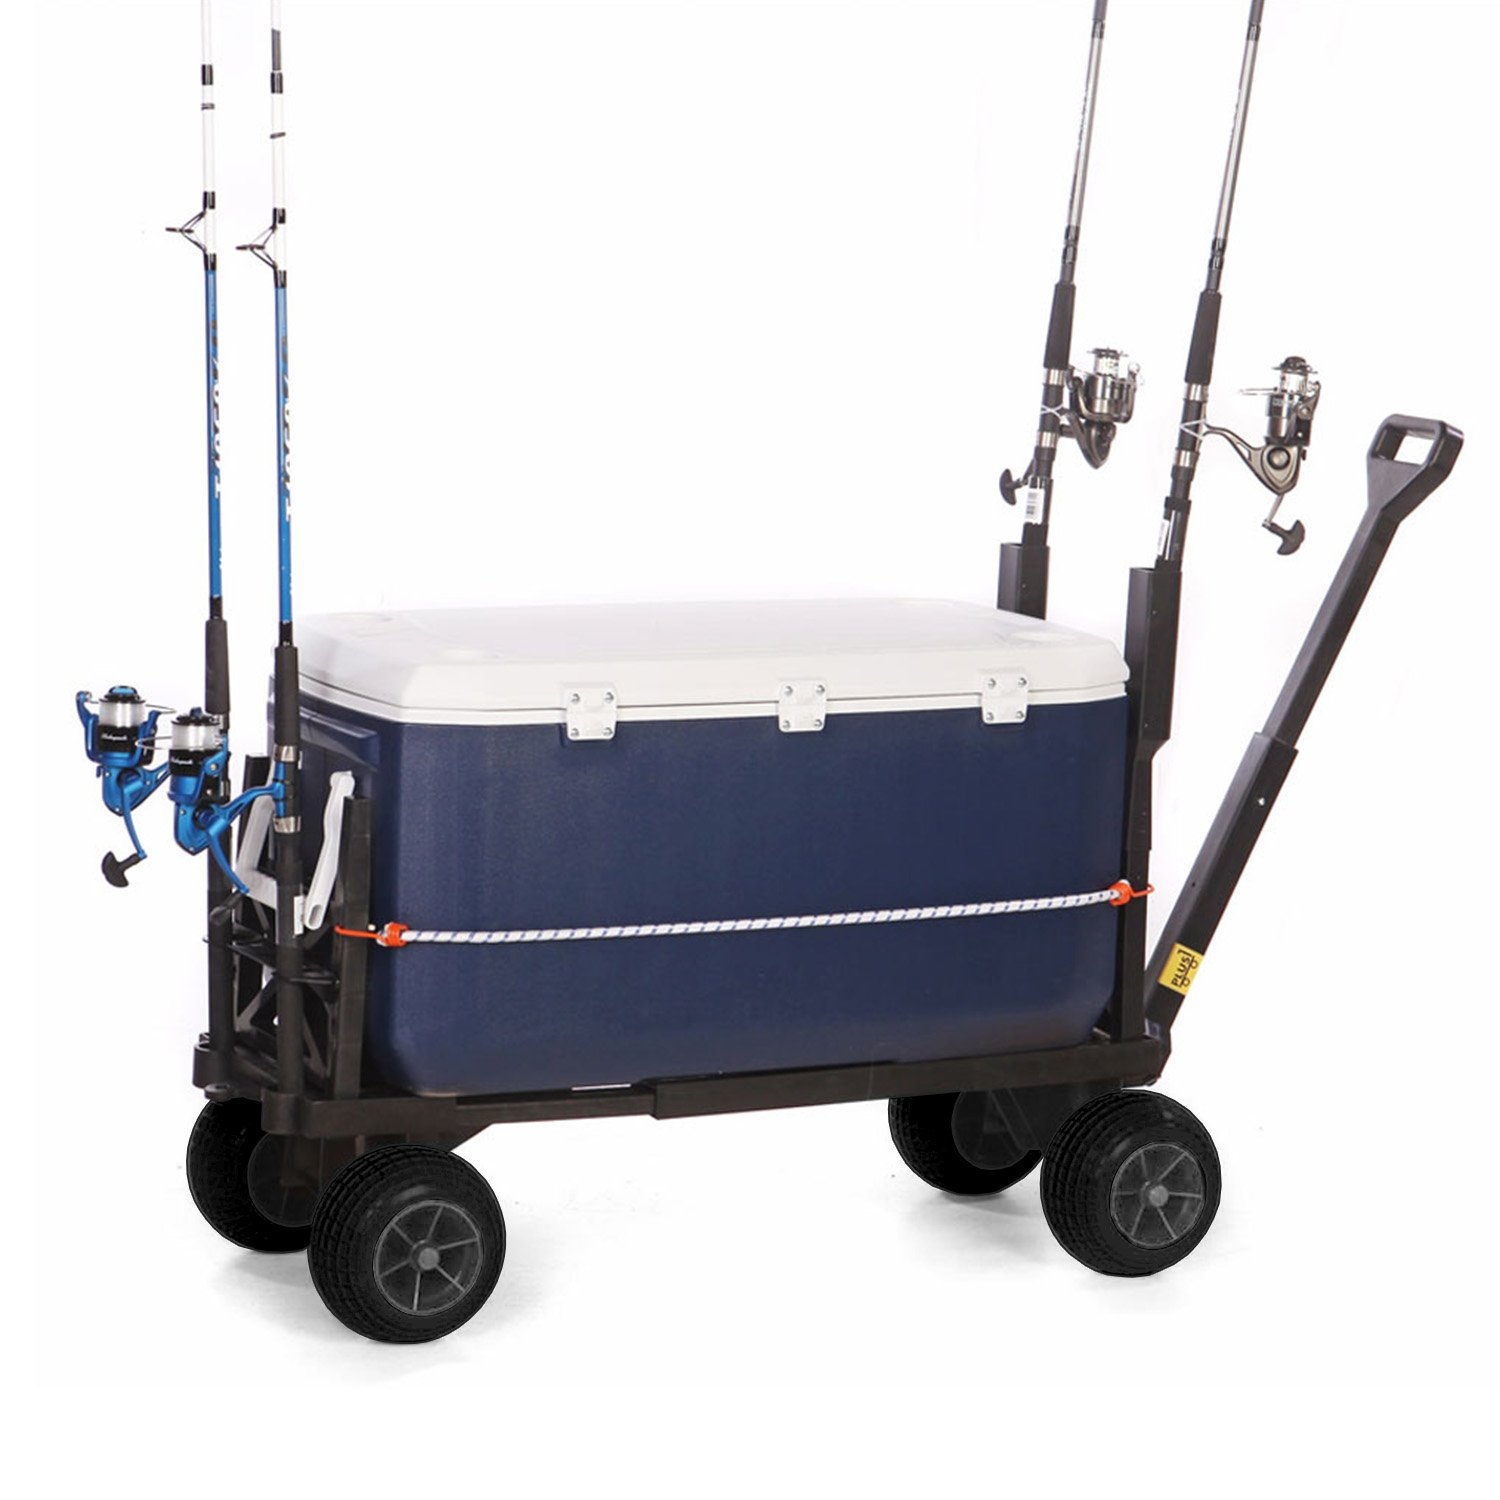 Mighty Max Plus One Multipurpose Garden Fishing Sports Equipment Cart by Mighty Max Cart (Image #9)